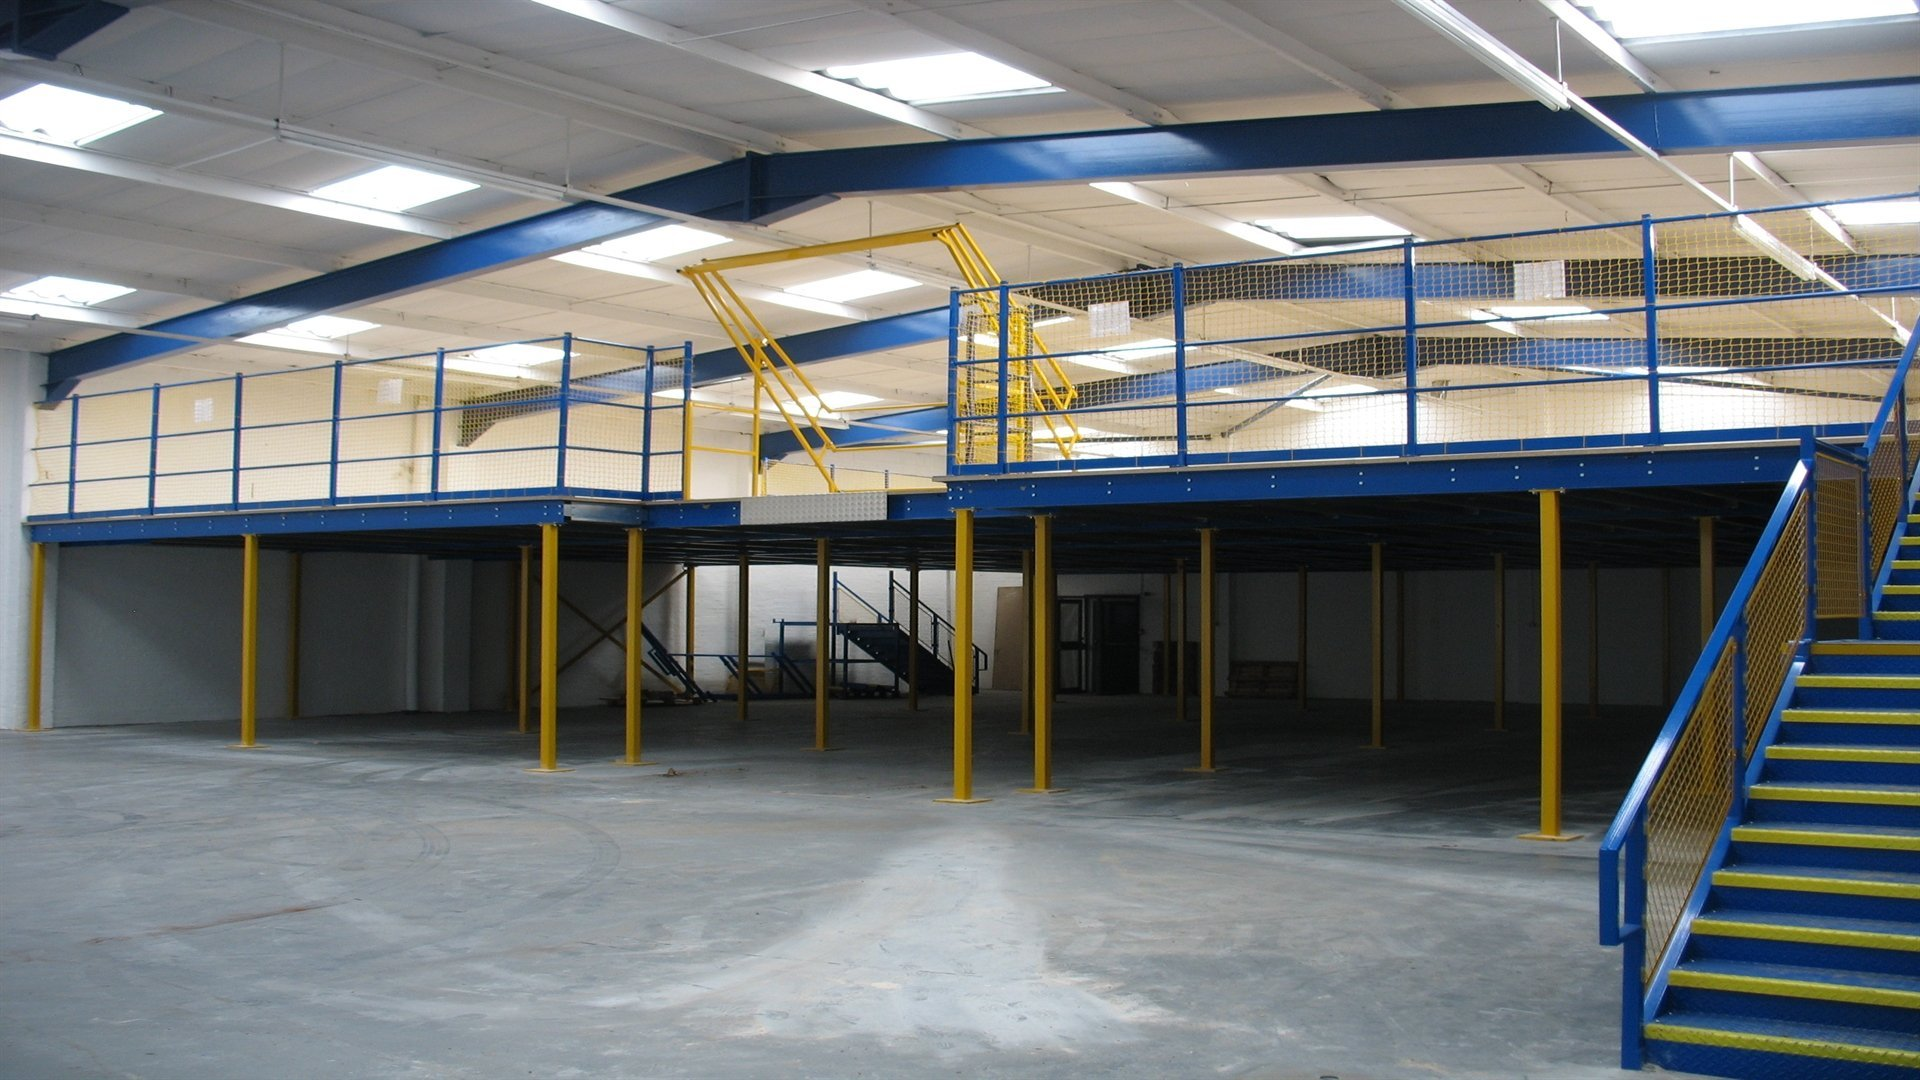 Mezzanine Floor, Industrial & Warehouse Mezzanine Floor Systems